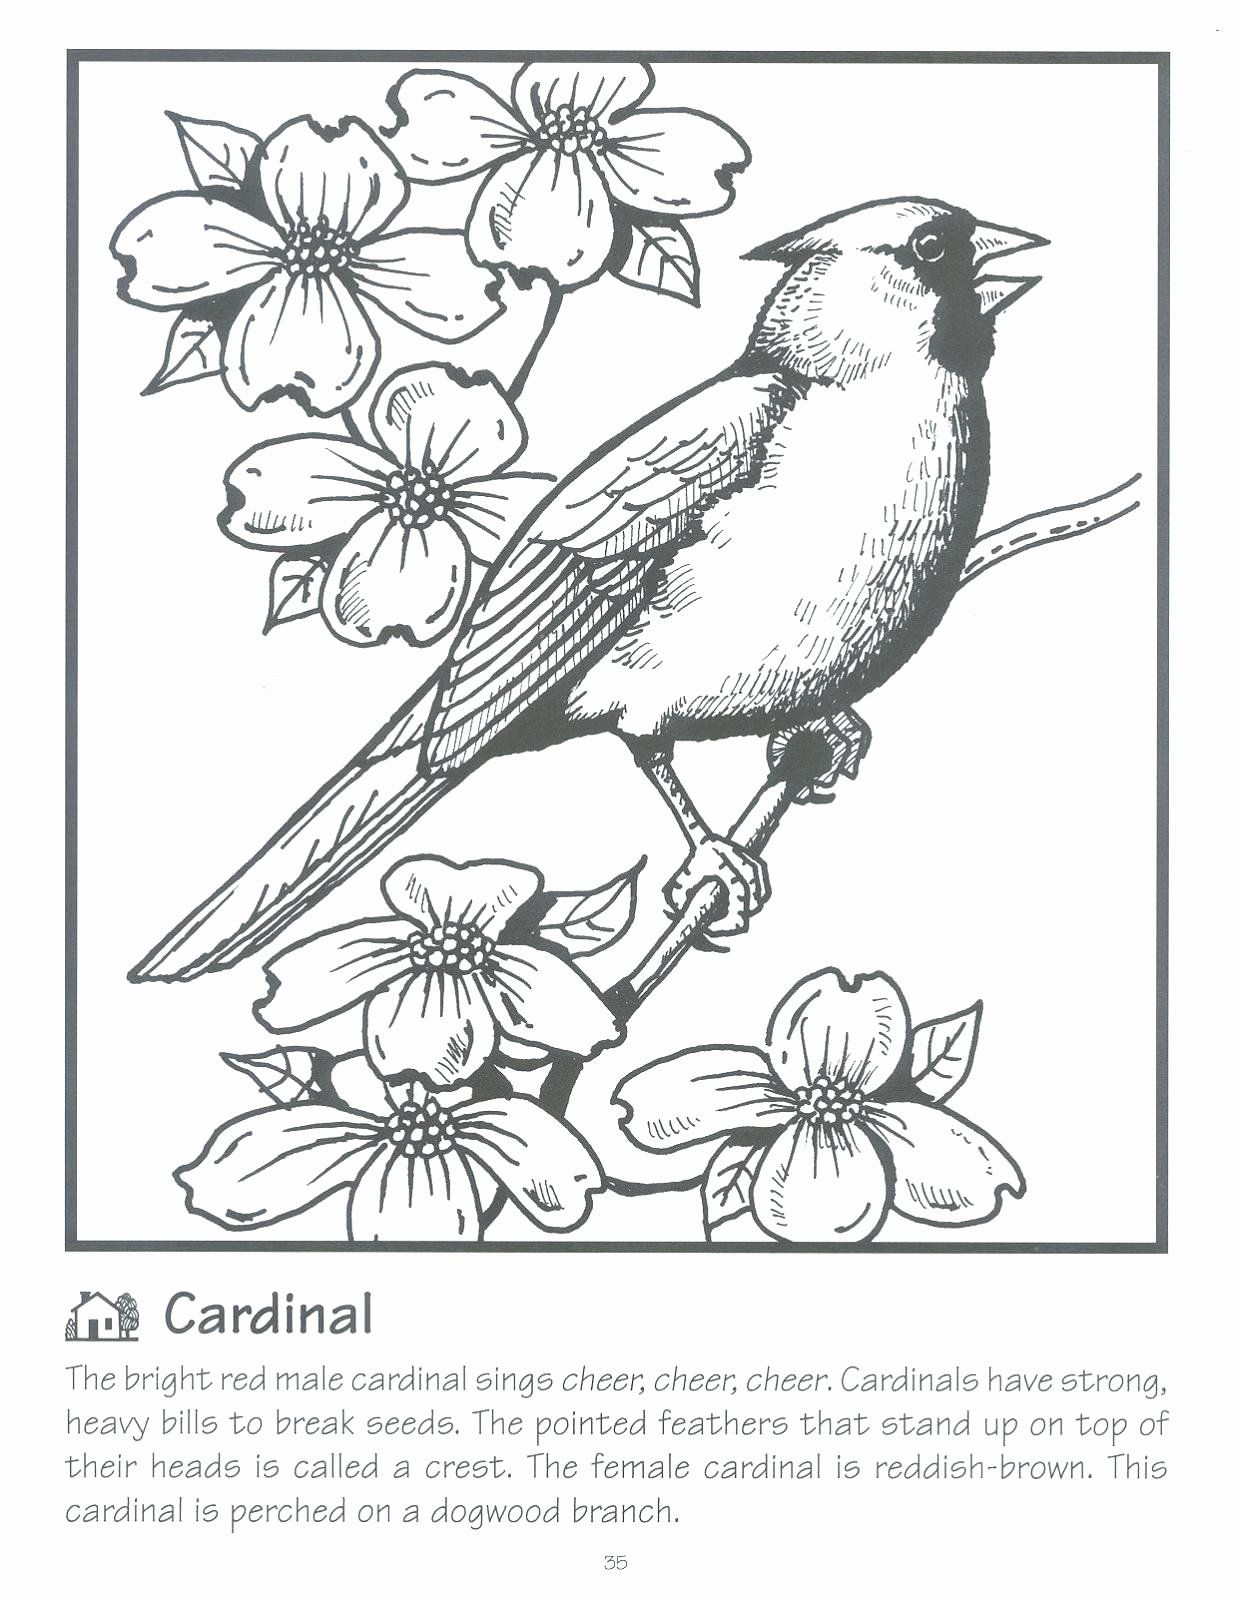 Arizona Cardinals Coloring Page Beautiful Cardinal Arizona Cardinals Coloring Pages Print Colo Animal Coloring Pages Coloring Pages Transformers Coloring Pages